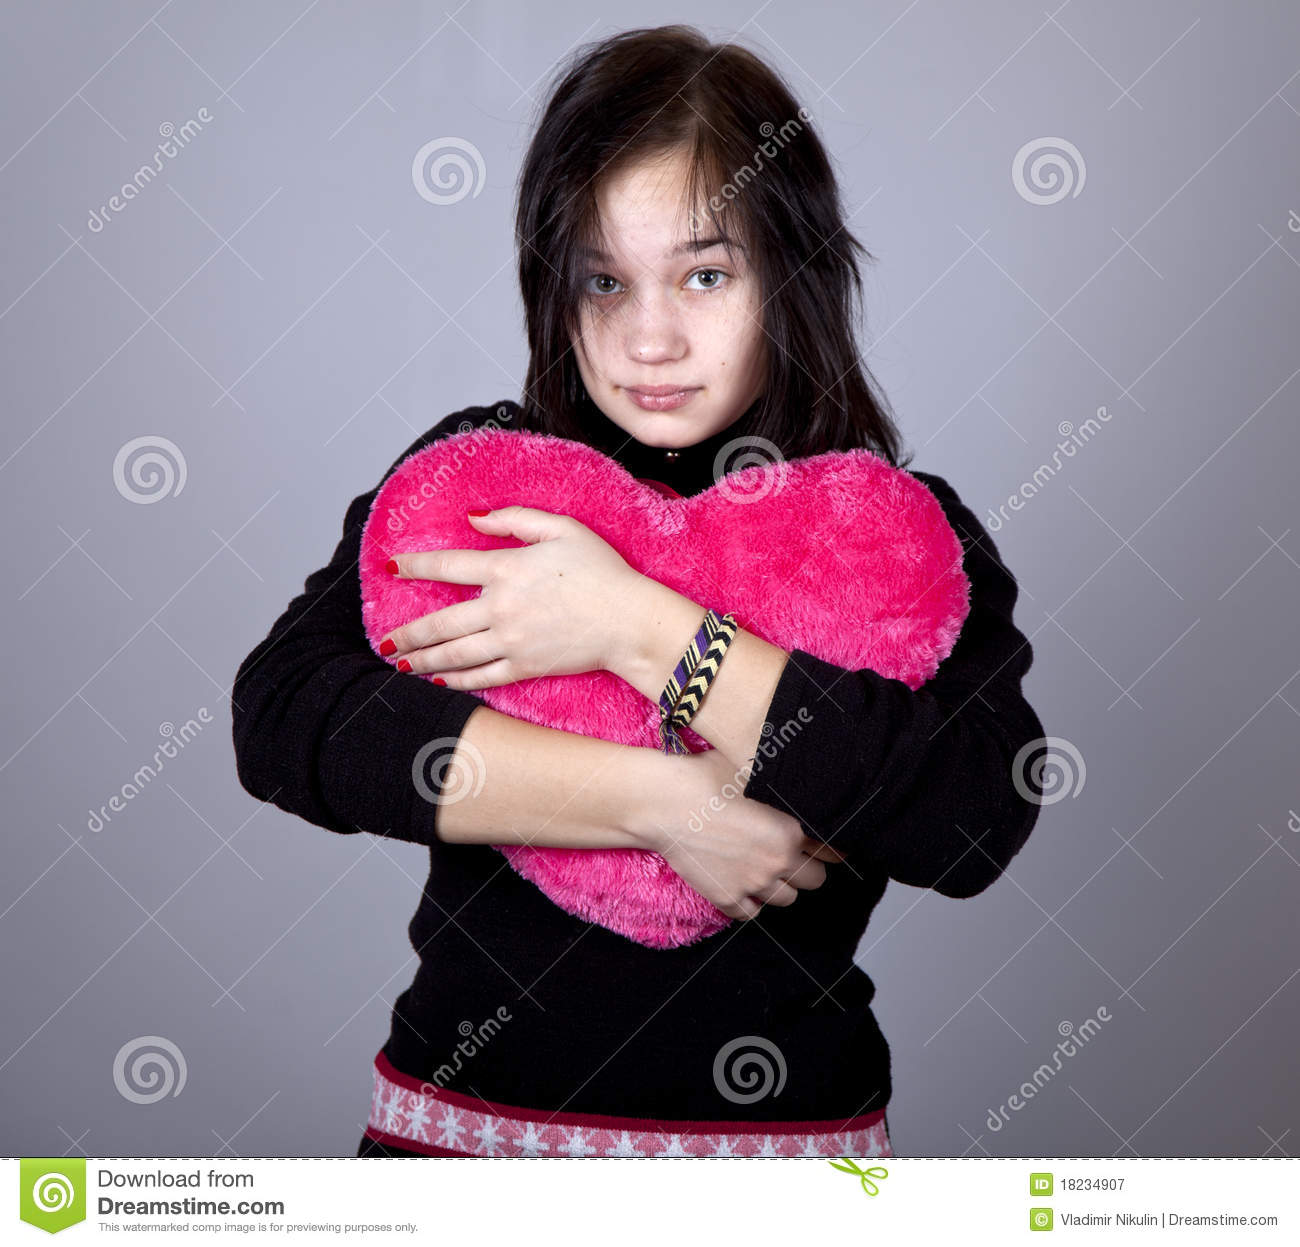 Gril Toy For Teenager : Funny girl with toy heart royalty free stock photography